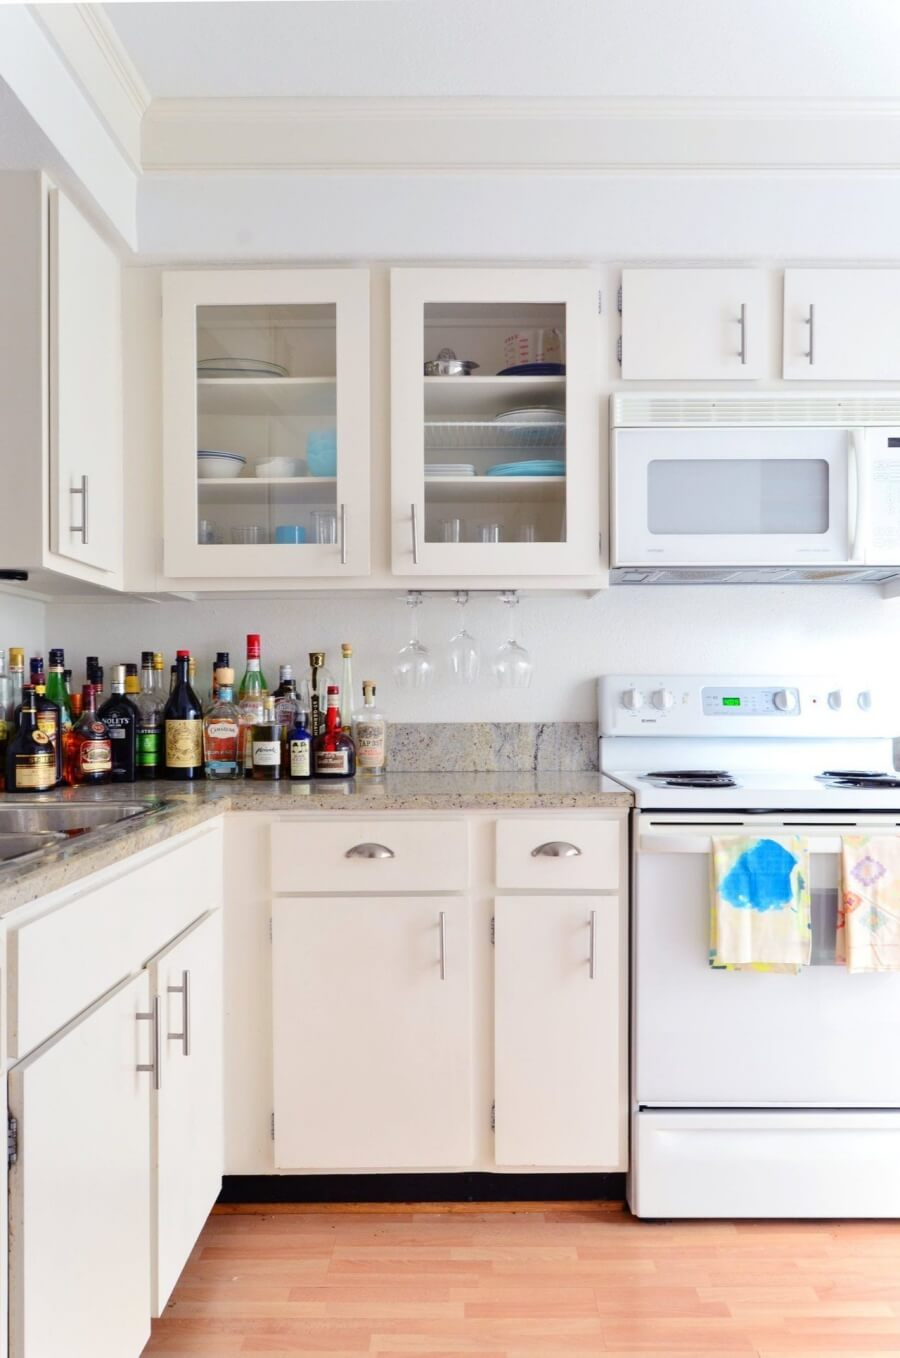 Clean Cabinet Boxes and Doors